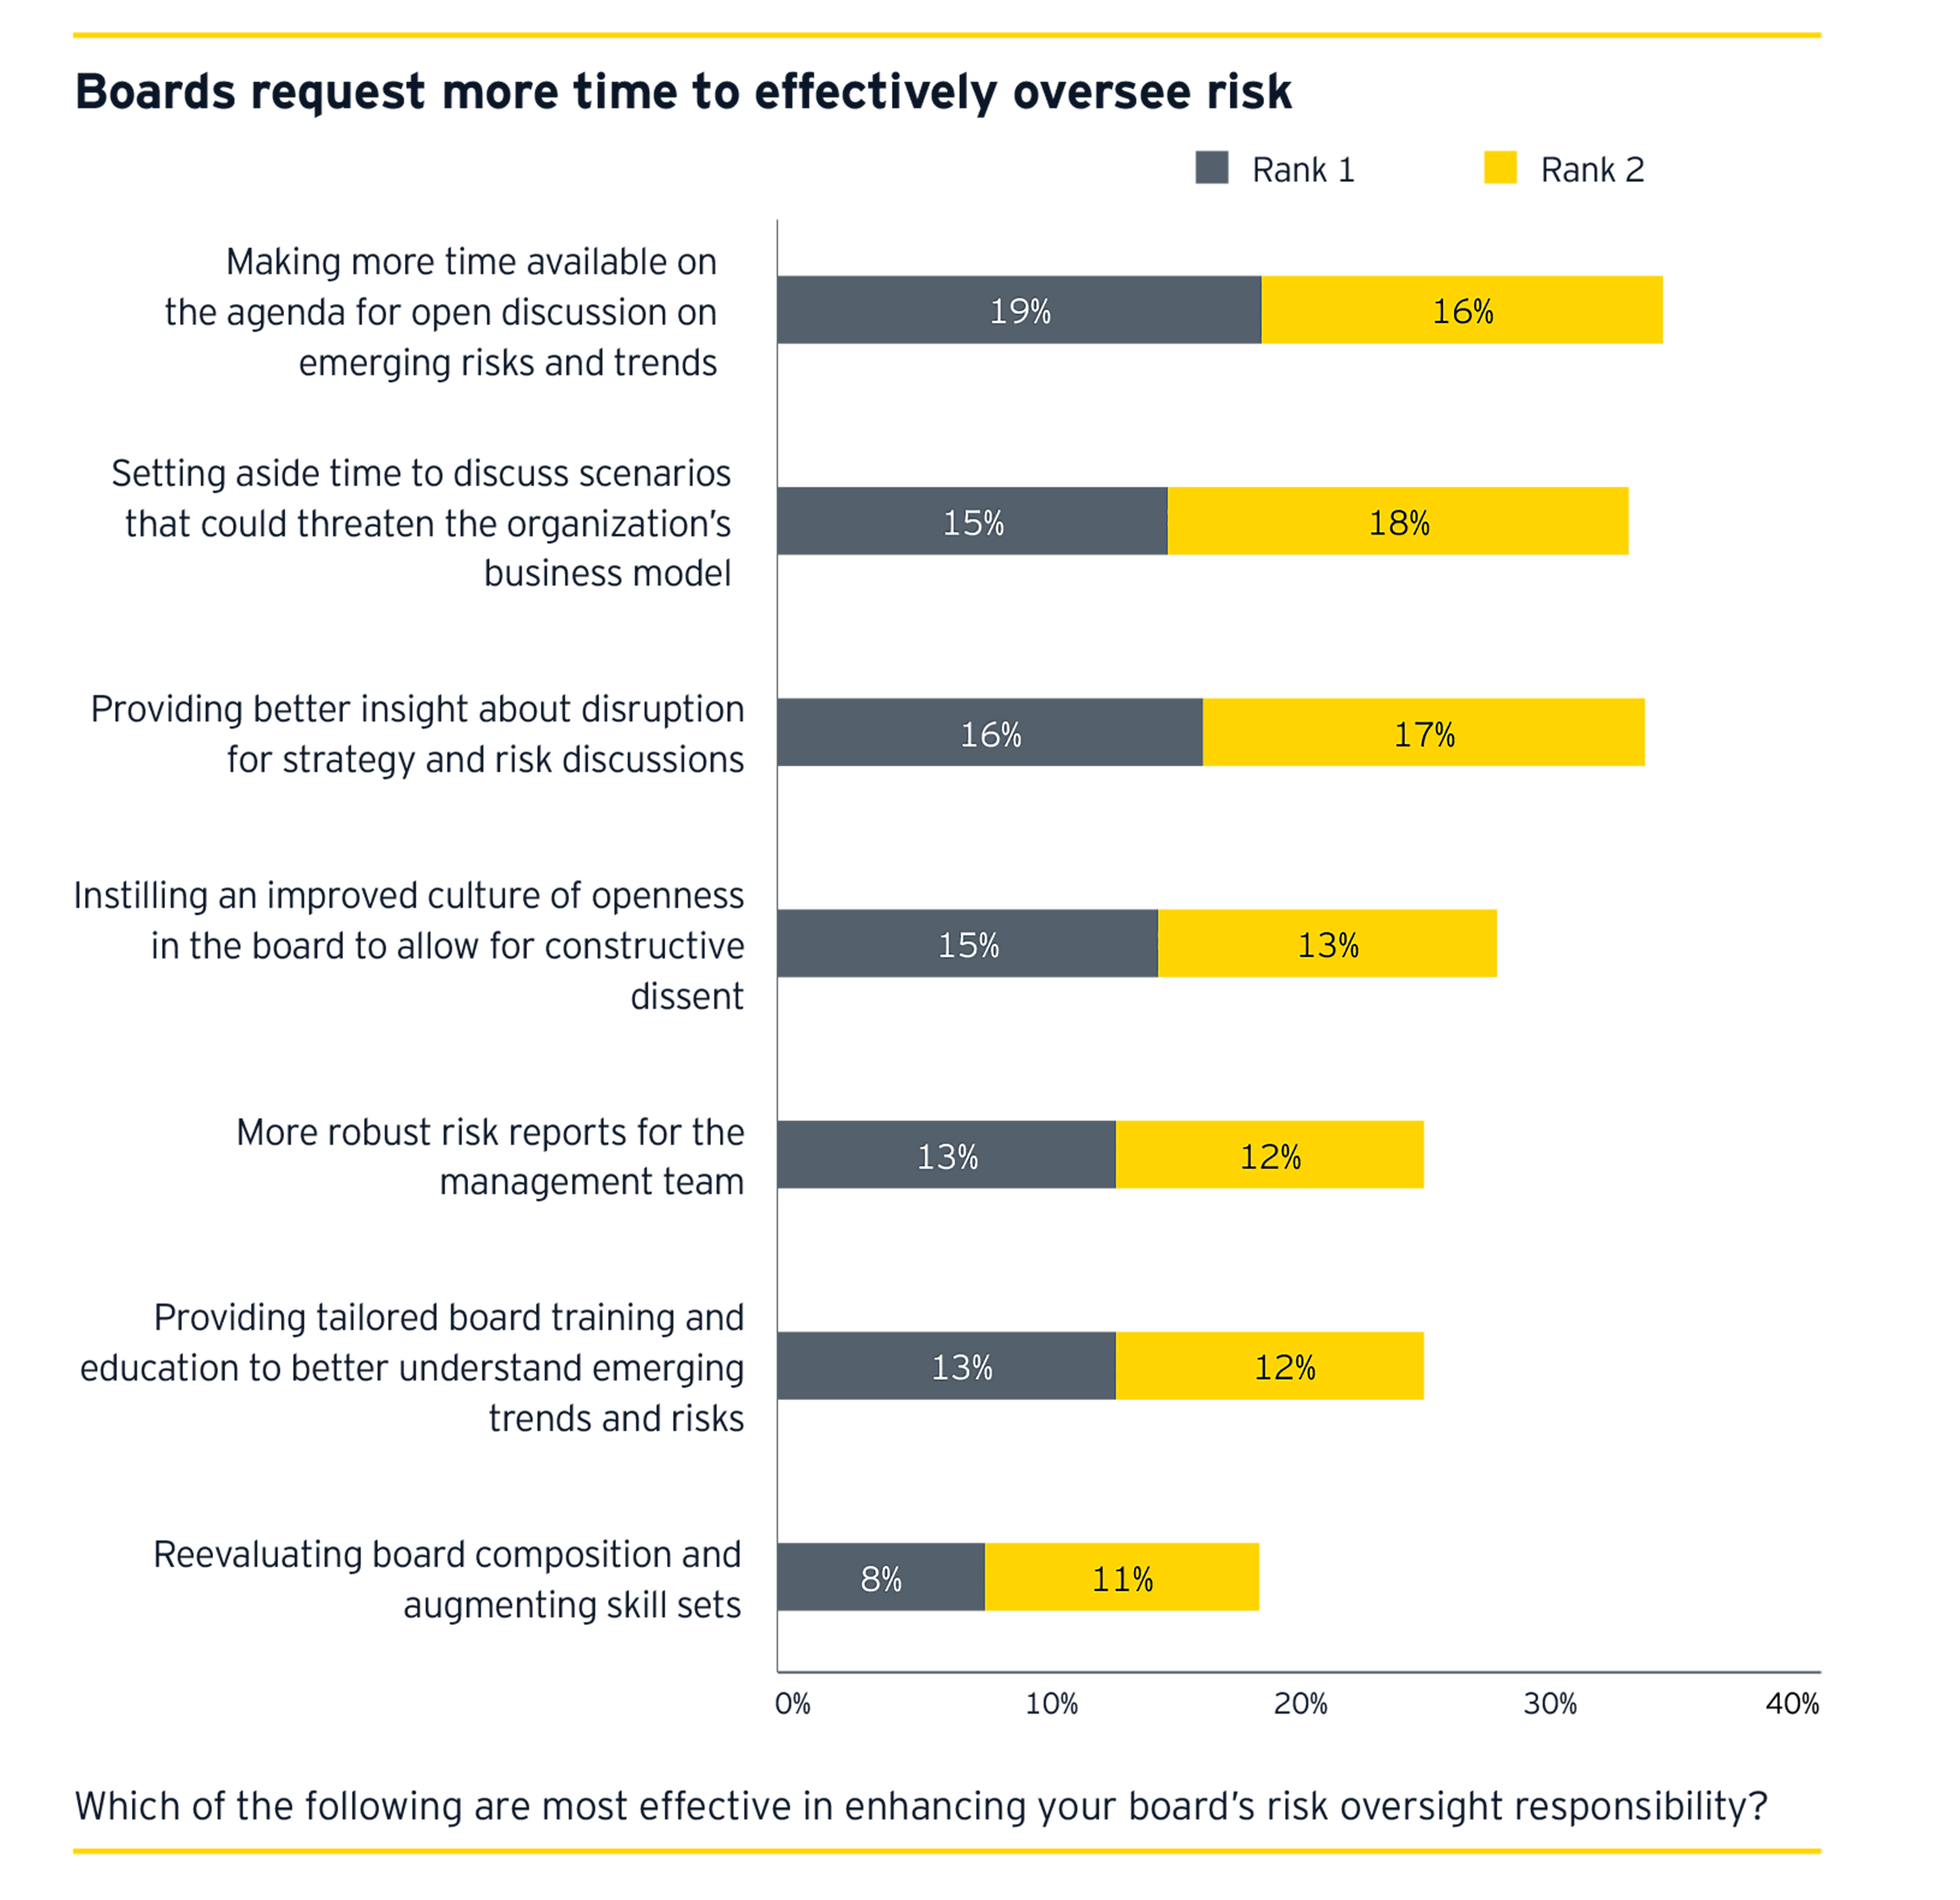 Boards request more time to effectively oversee risk